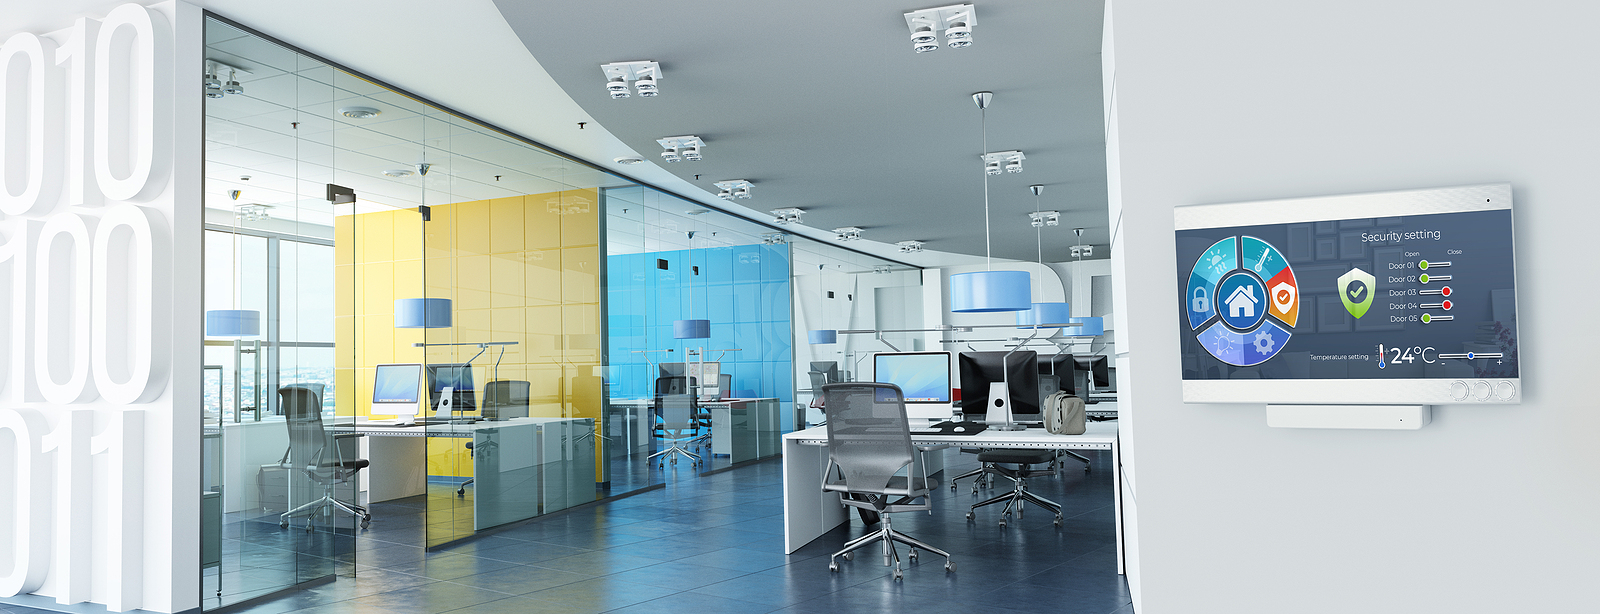 4 Reasons For An Indoor Air Quality Monitoring System